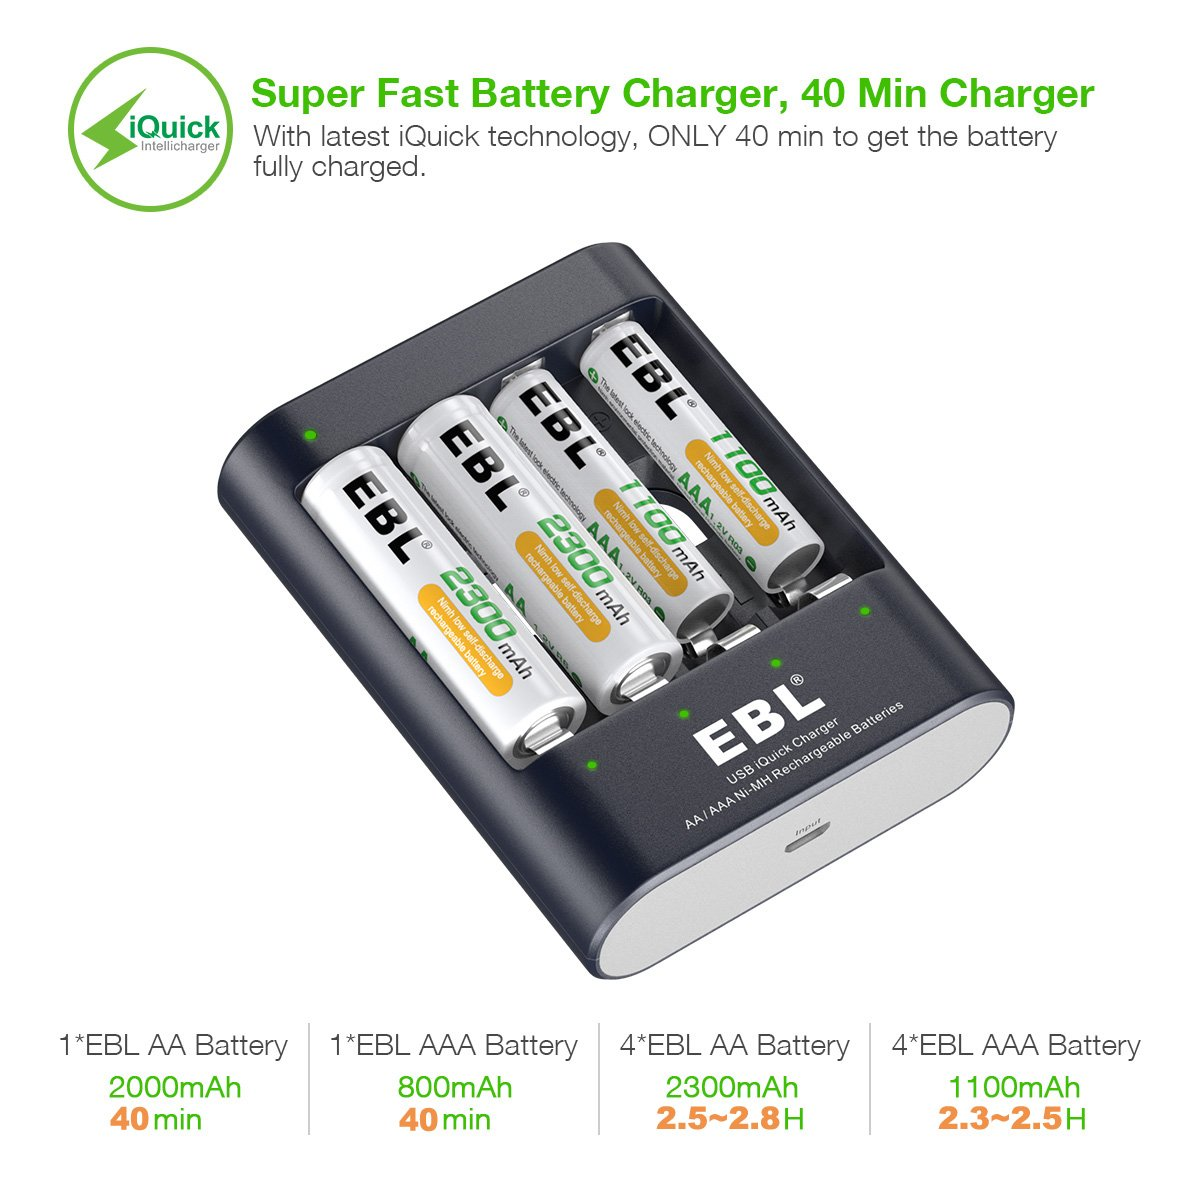 EBL 40Mins Super Fast Battery Charger with 4 X 2300mAh Ni-MH Rechargeable AA Batteries